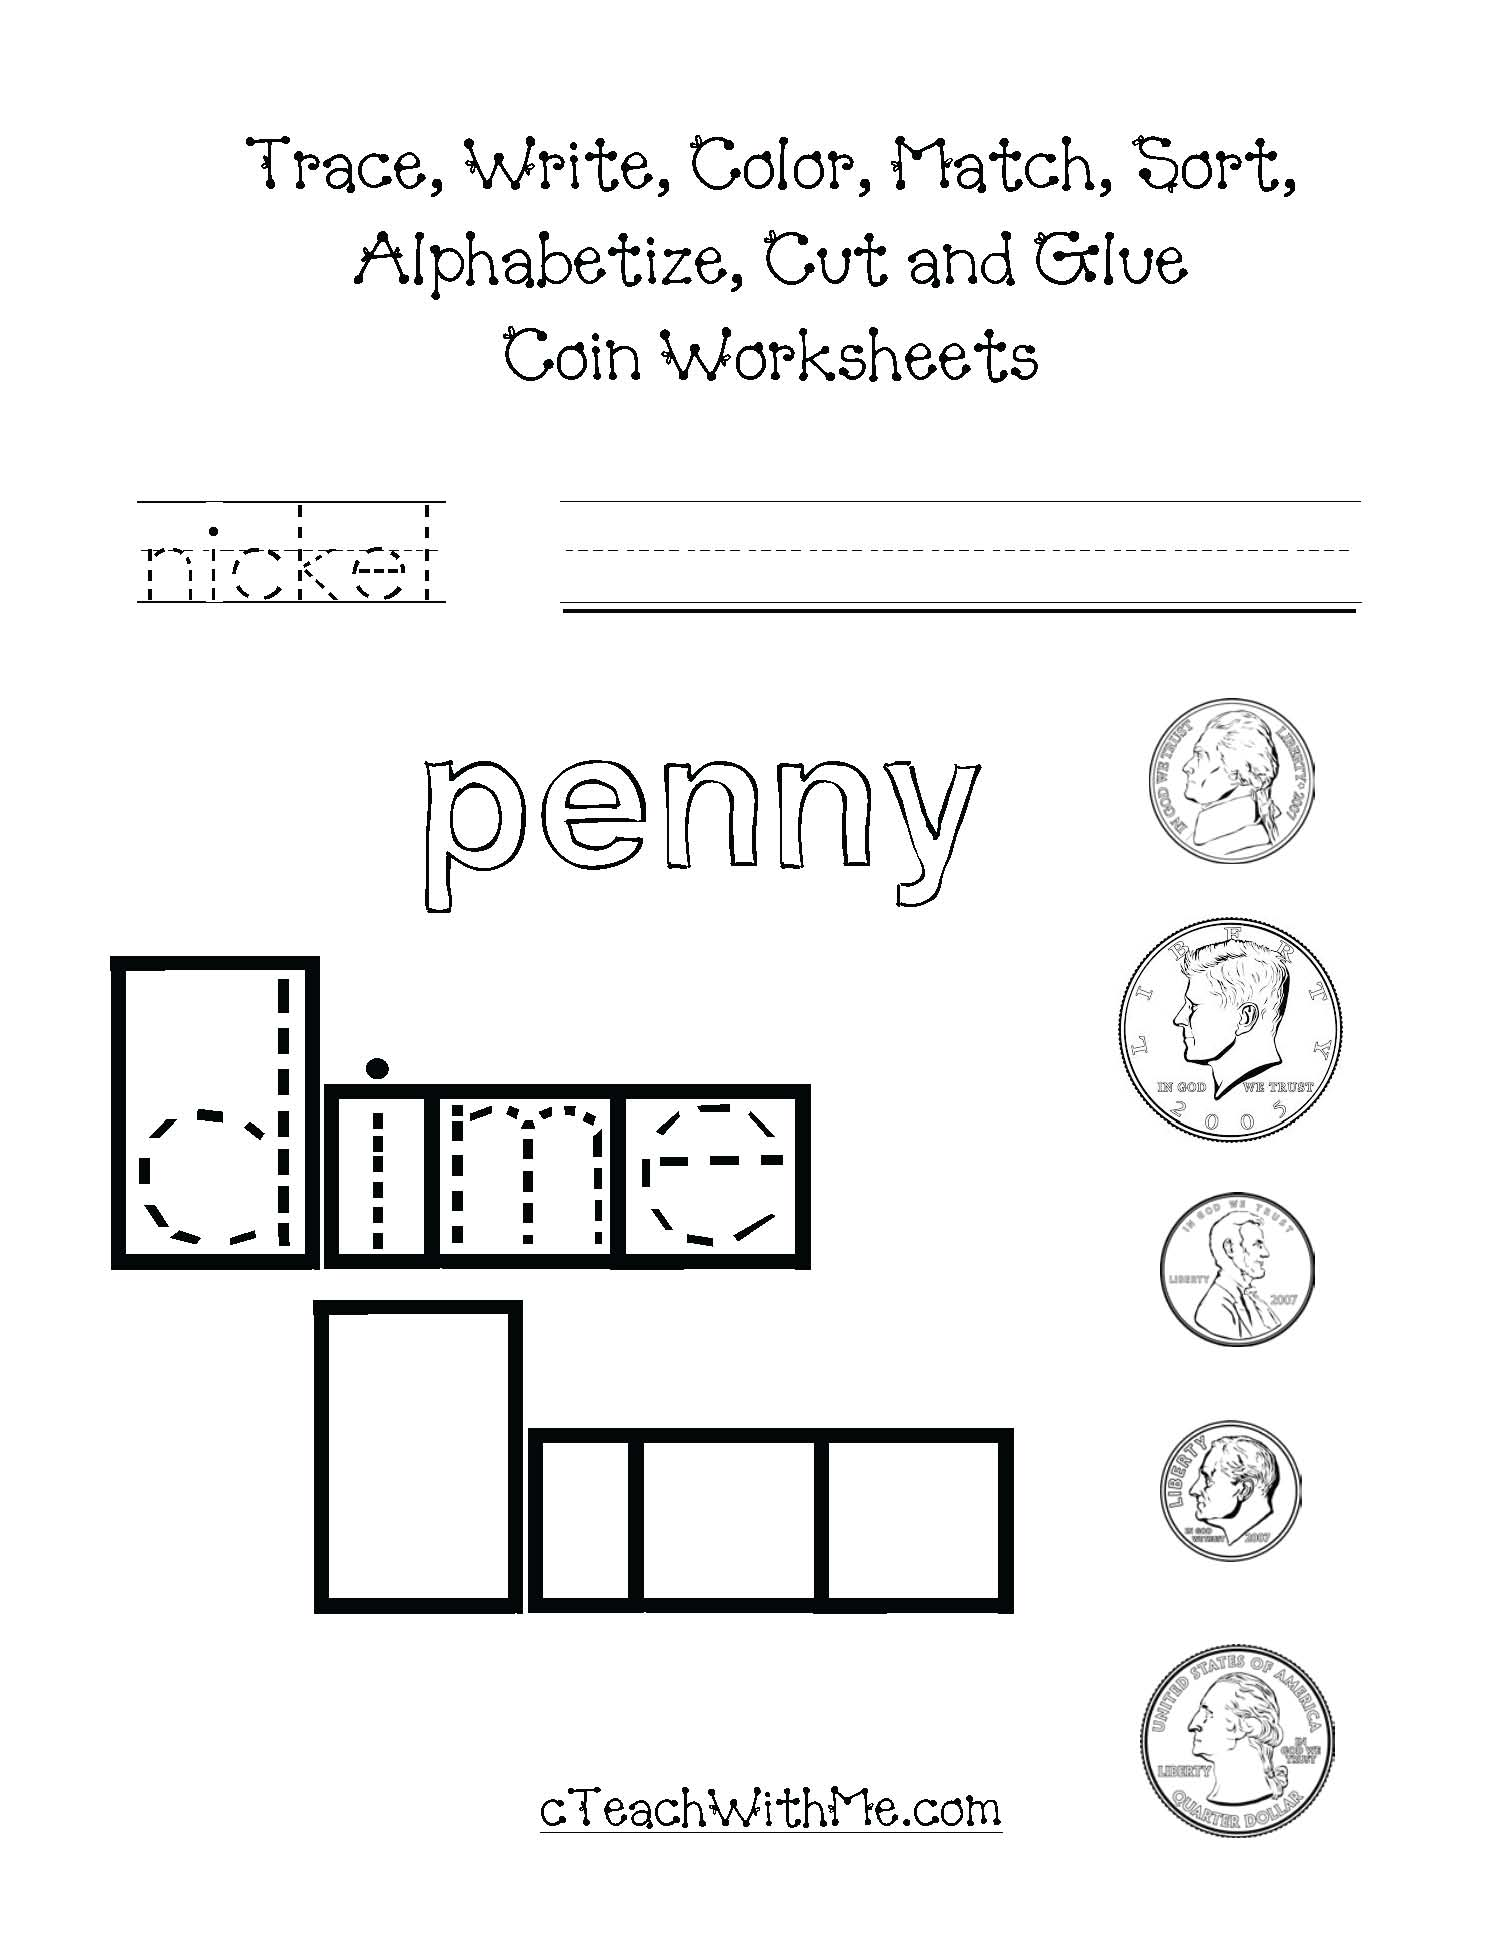 10 frames templates, 10 frames activities, 10 frames with coins on them, 10 frame cards, ten frames templates, ten frames activities, coin activities, coin lessons, coin centers, coin worksheets, coin crafts, coin games, identifying coins, coin posters, coin songs, coin poems, file folder facts, file folder activities, file folder reports, dice games, math games, coin games, presidents day activities, paper coin templates, coin crafts,